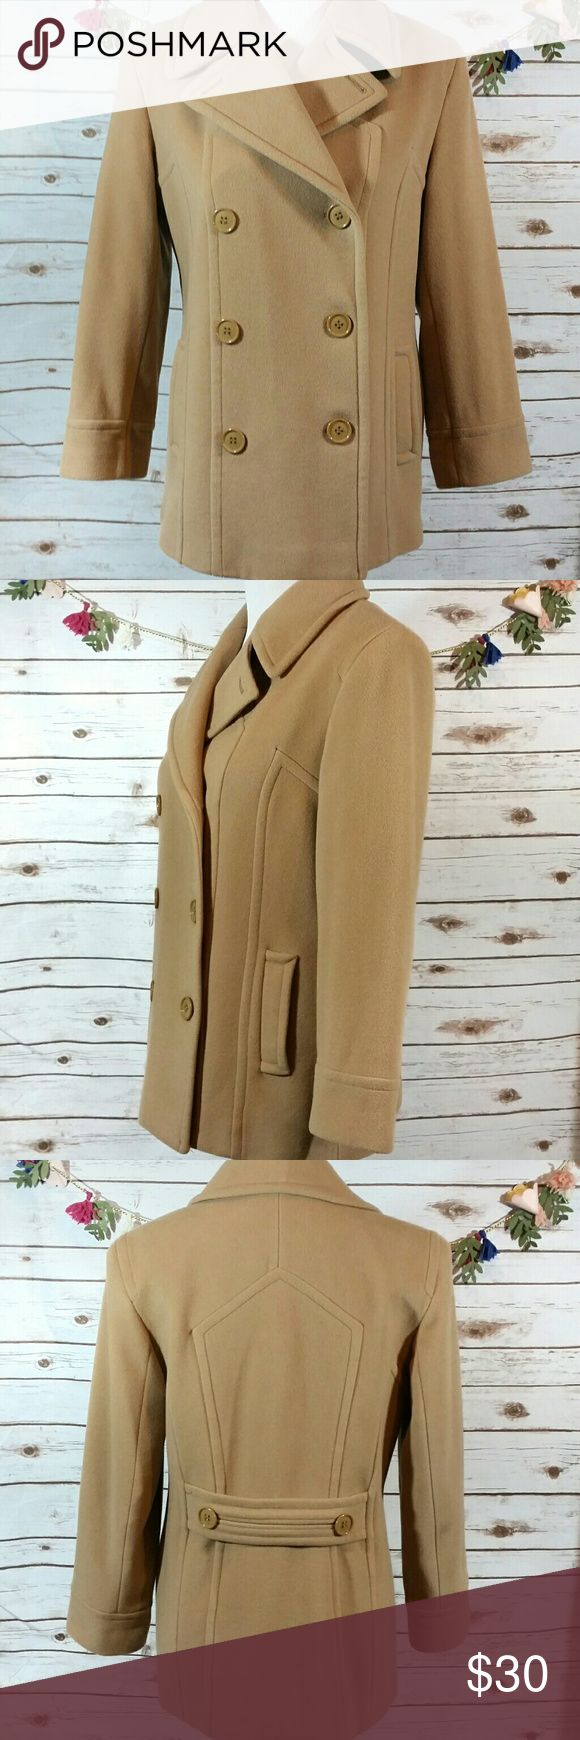 """Collection by Gallery tan wool coat This tan colored coat buttons up the front, has 2 front pockets, & also has shoulder pads. Length from the top of the shoulder to the bottom is approx 28"""", bust is approx 38"""". All measurements taken unstretched. Shell is made of 80% wool, 20% nylon. Lining is 100% polyester Collection by Gallery Jackets & Coats"""